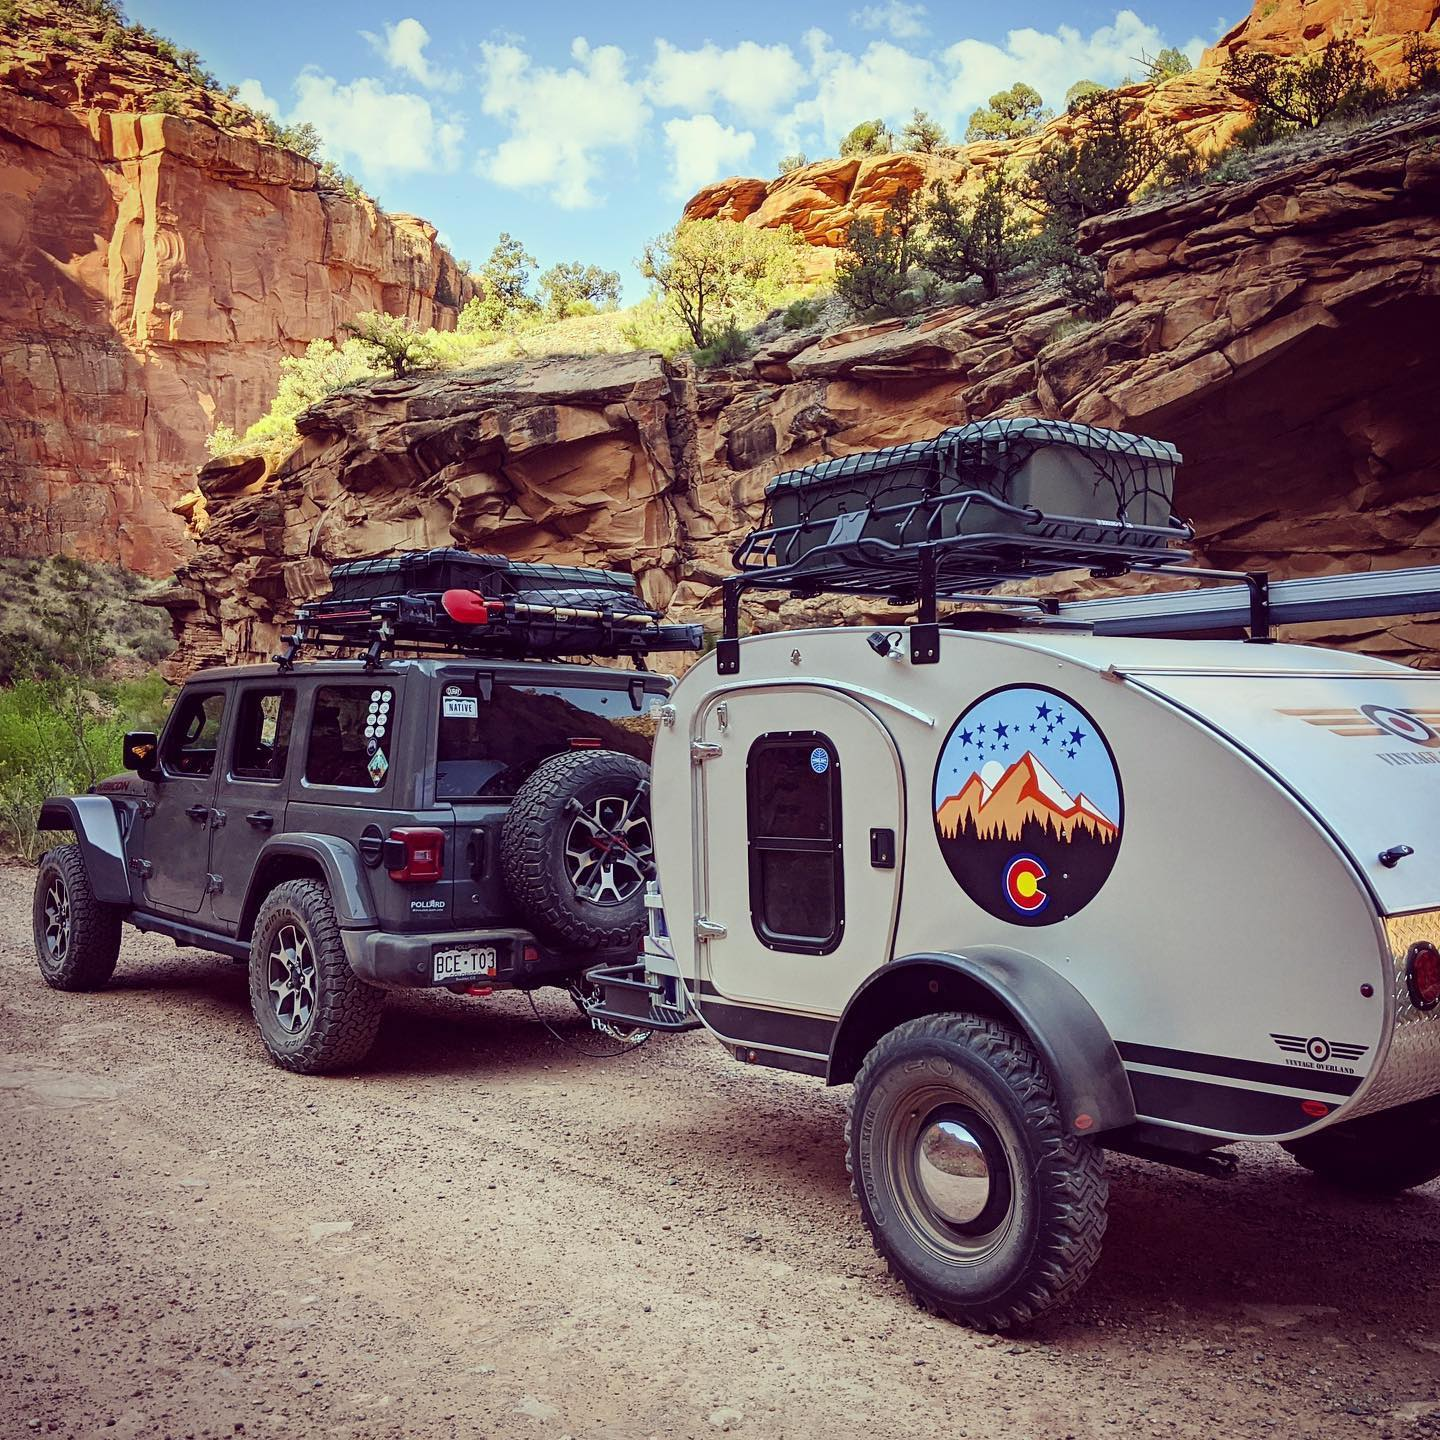 Image of a Vintage Overland trailer being towed by a jeep